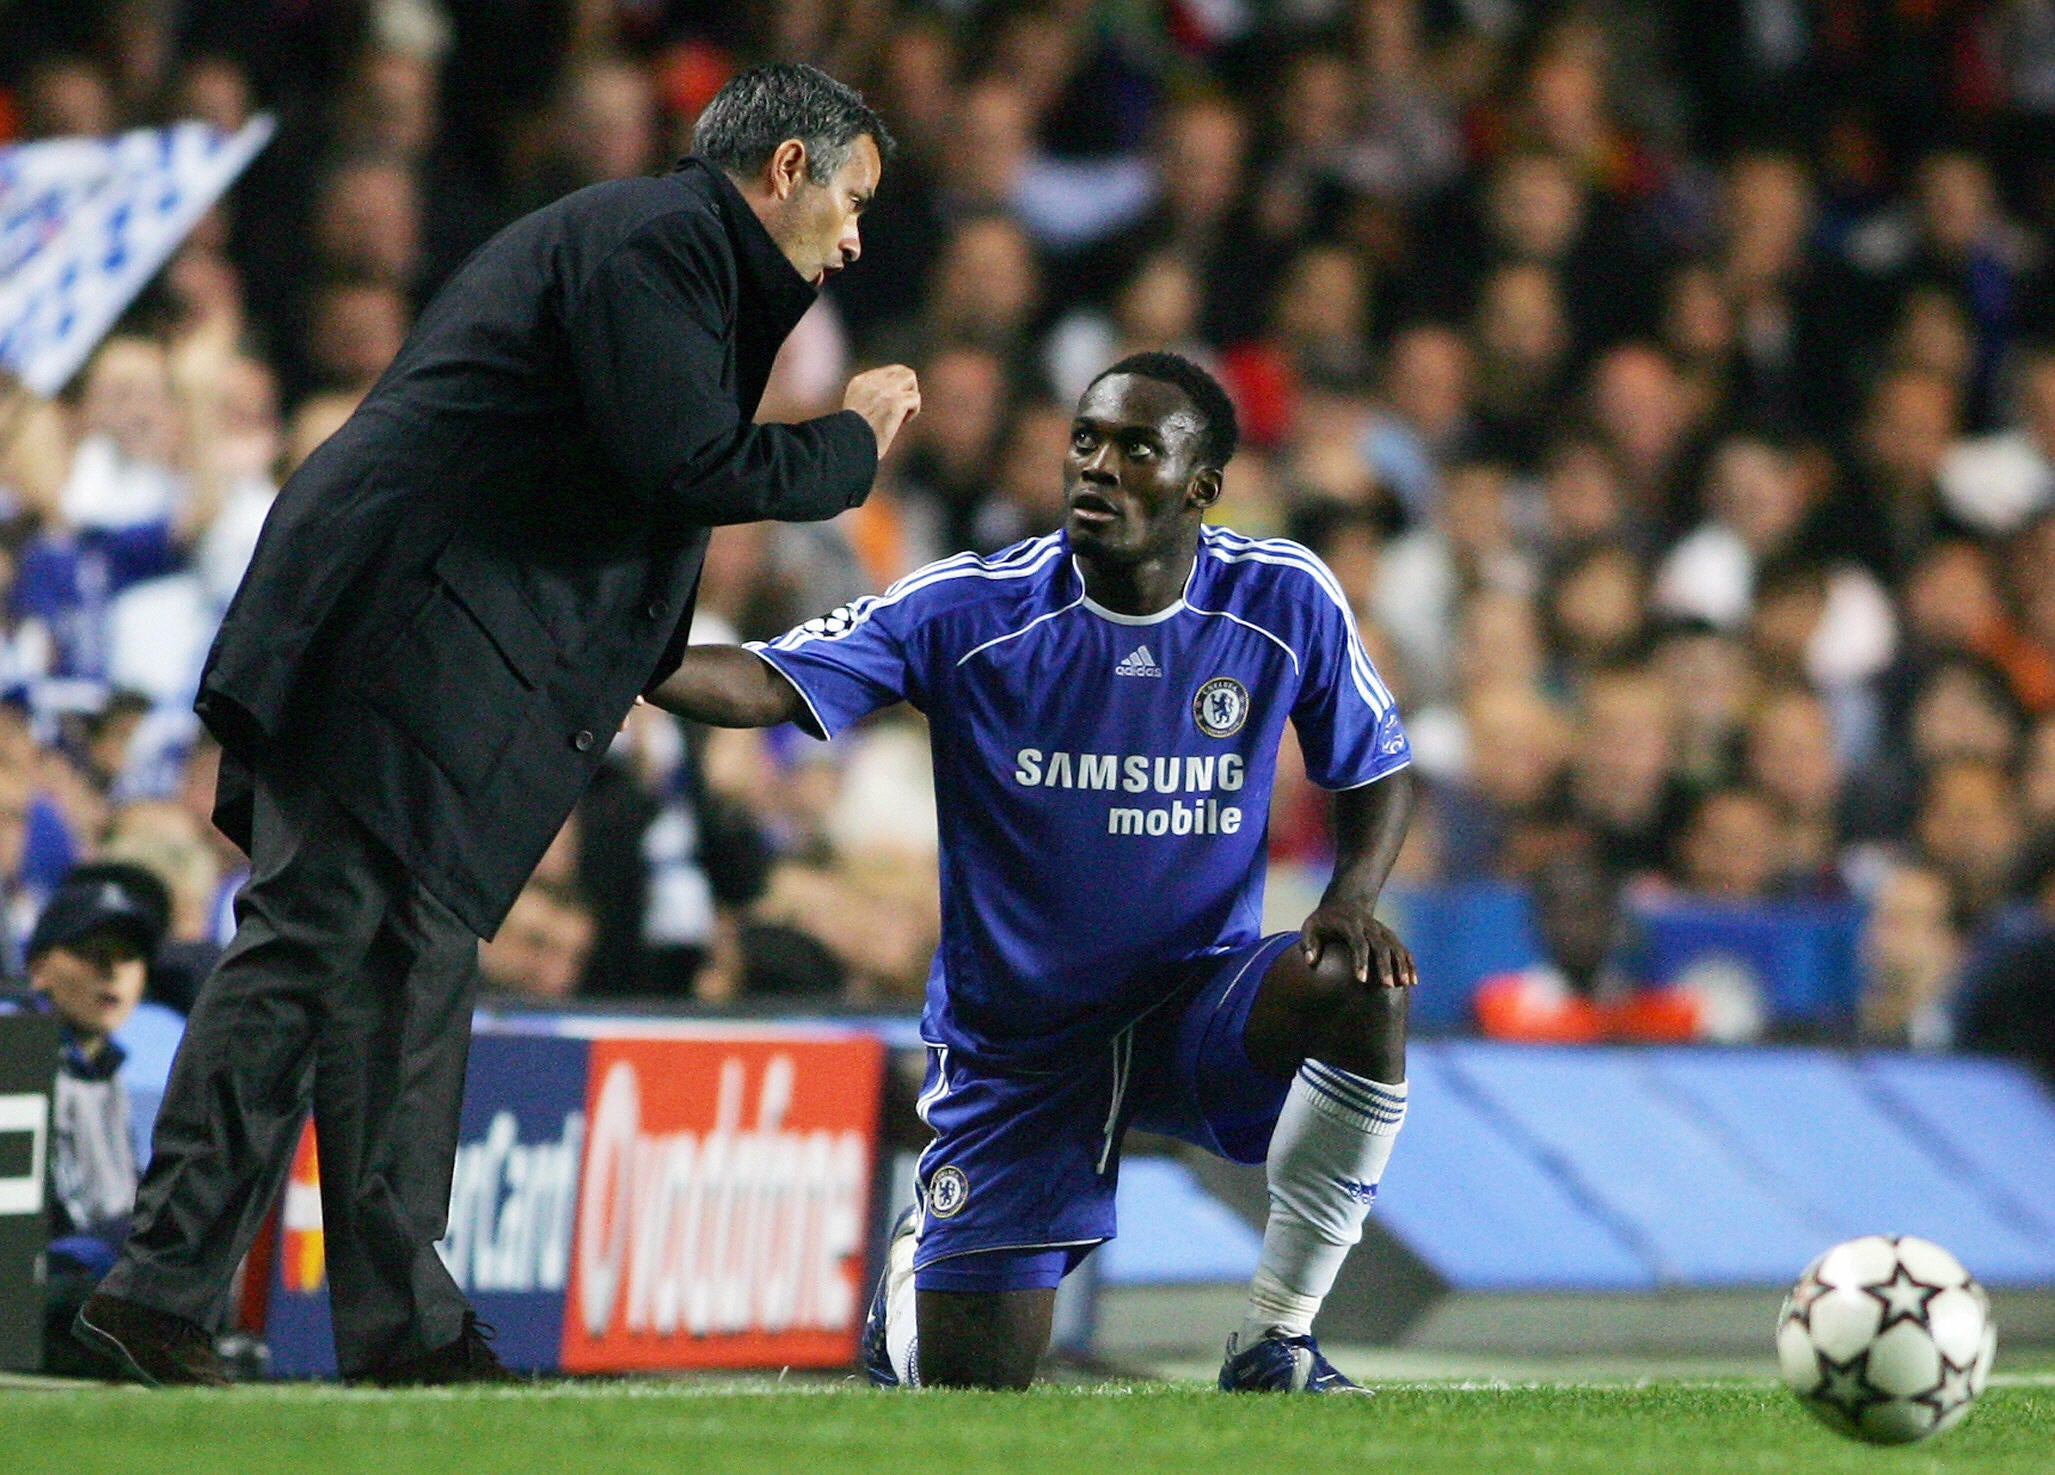 Michael Essien - latest news, breaking stories and comment - The